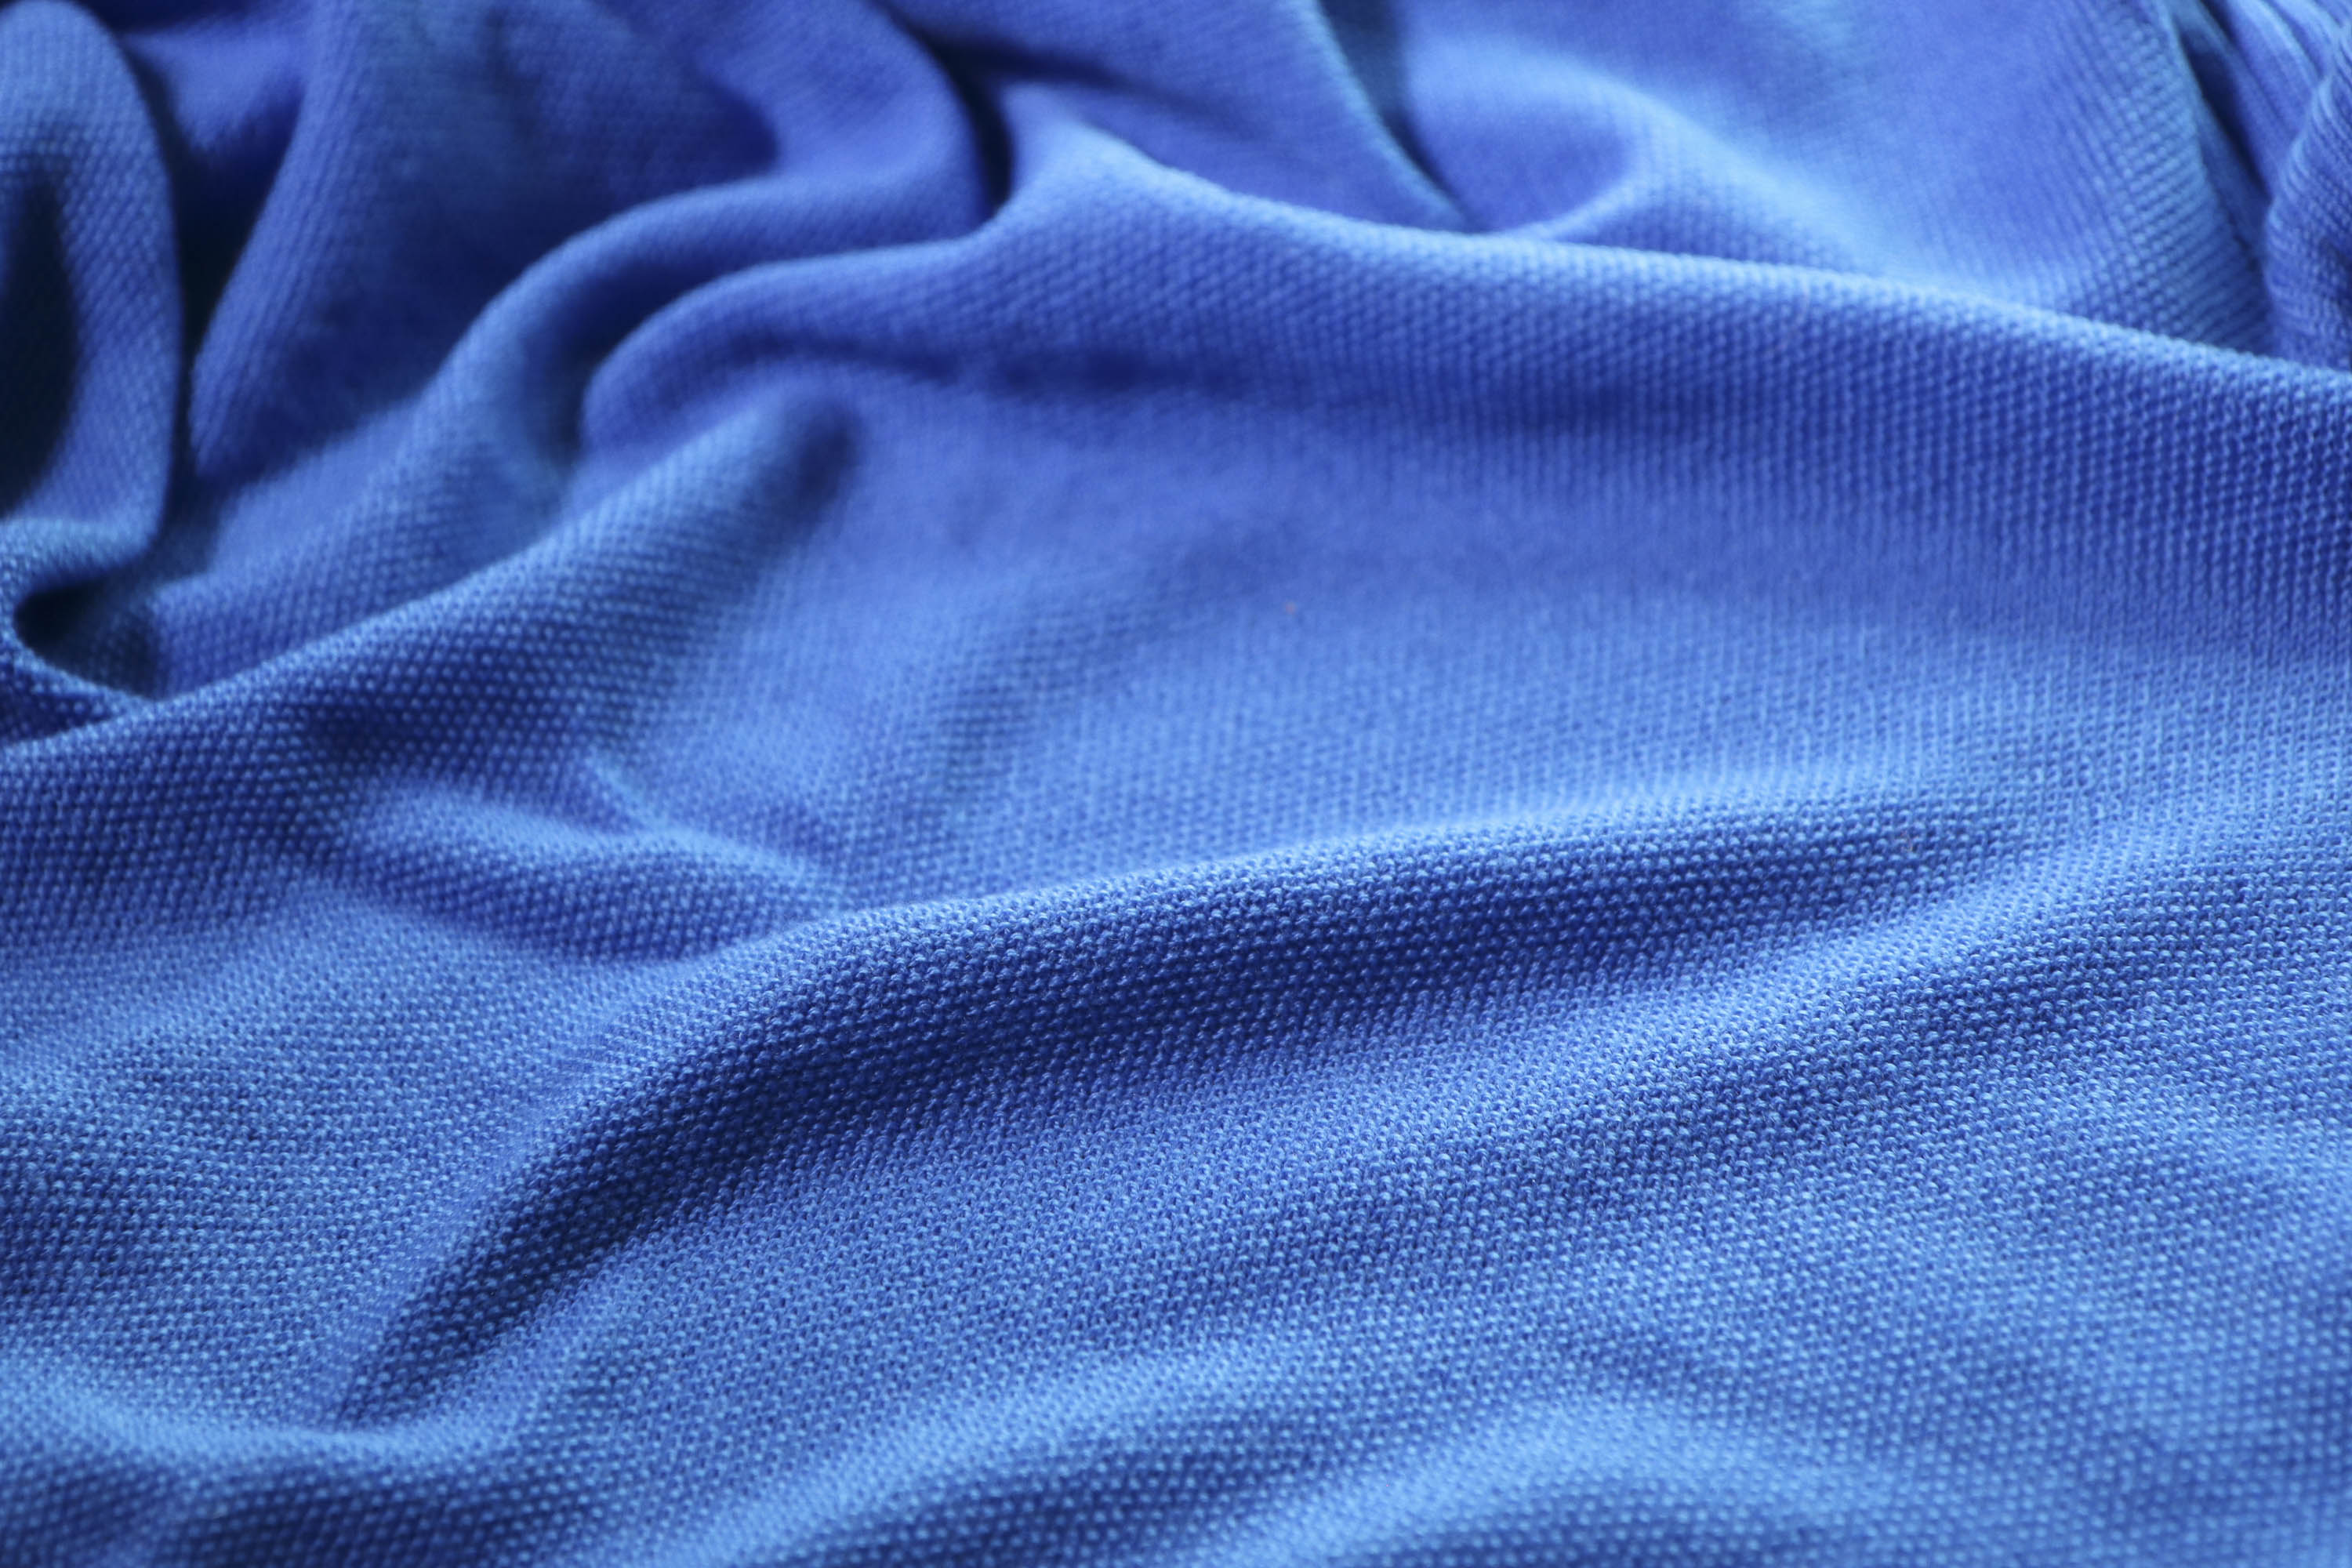 Detail of saand textile - gently textured moss stitch in bright blue yarn